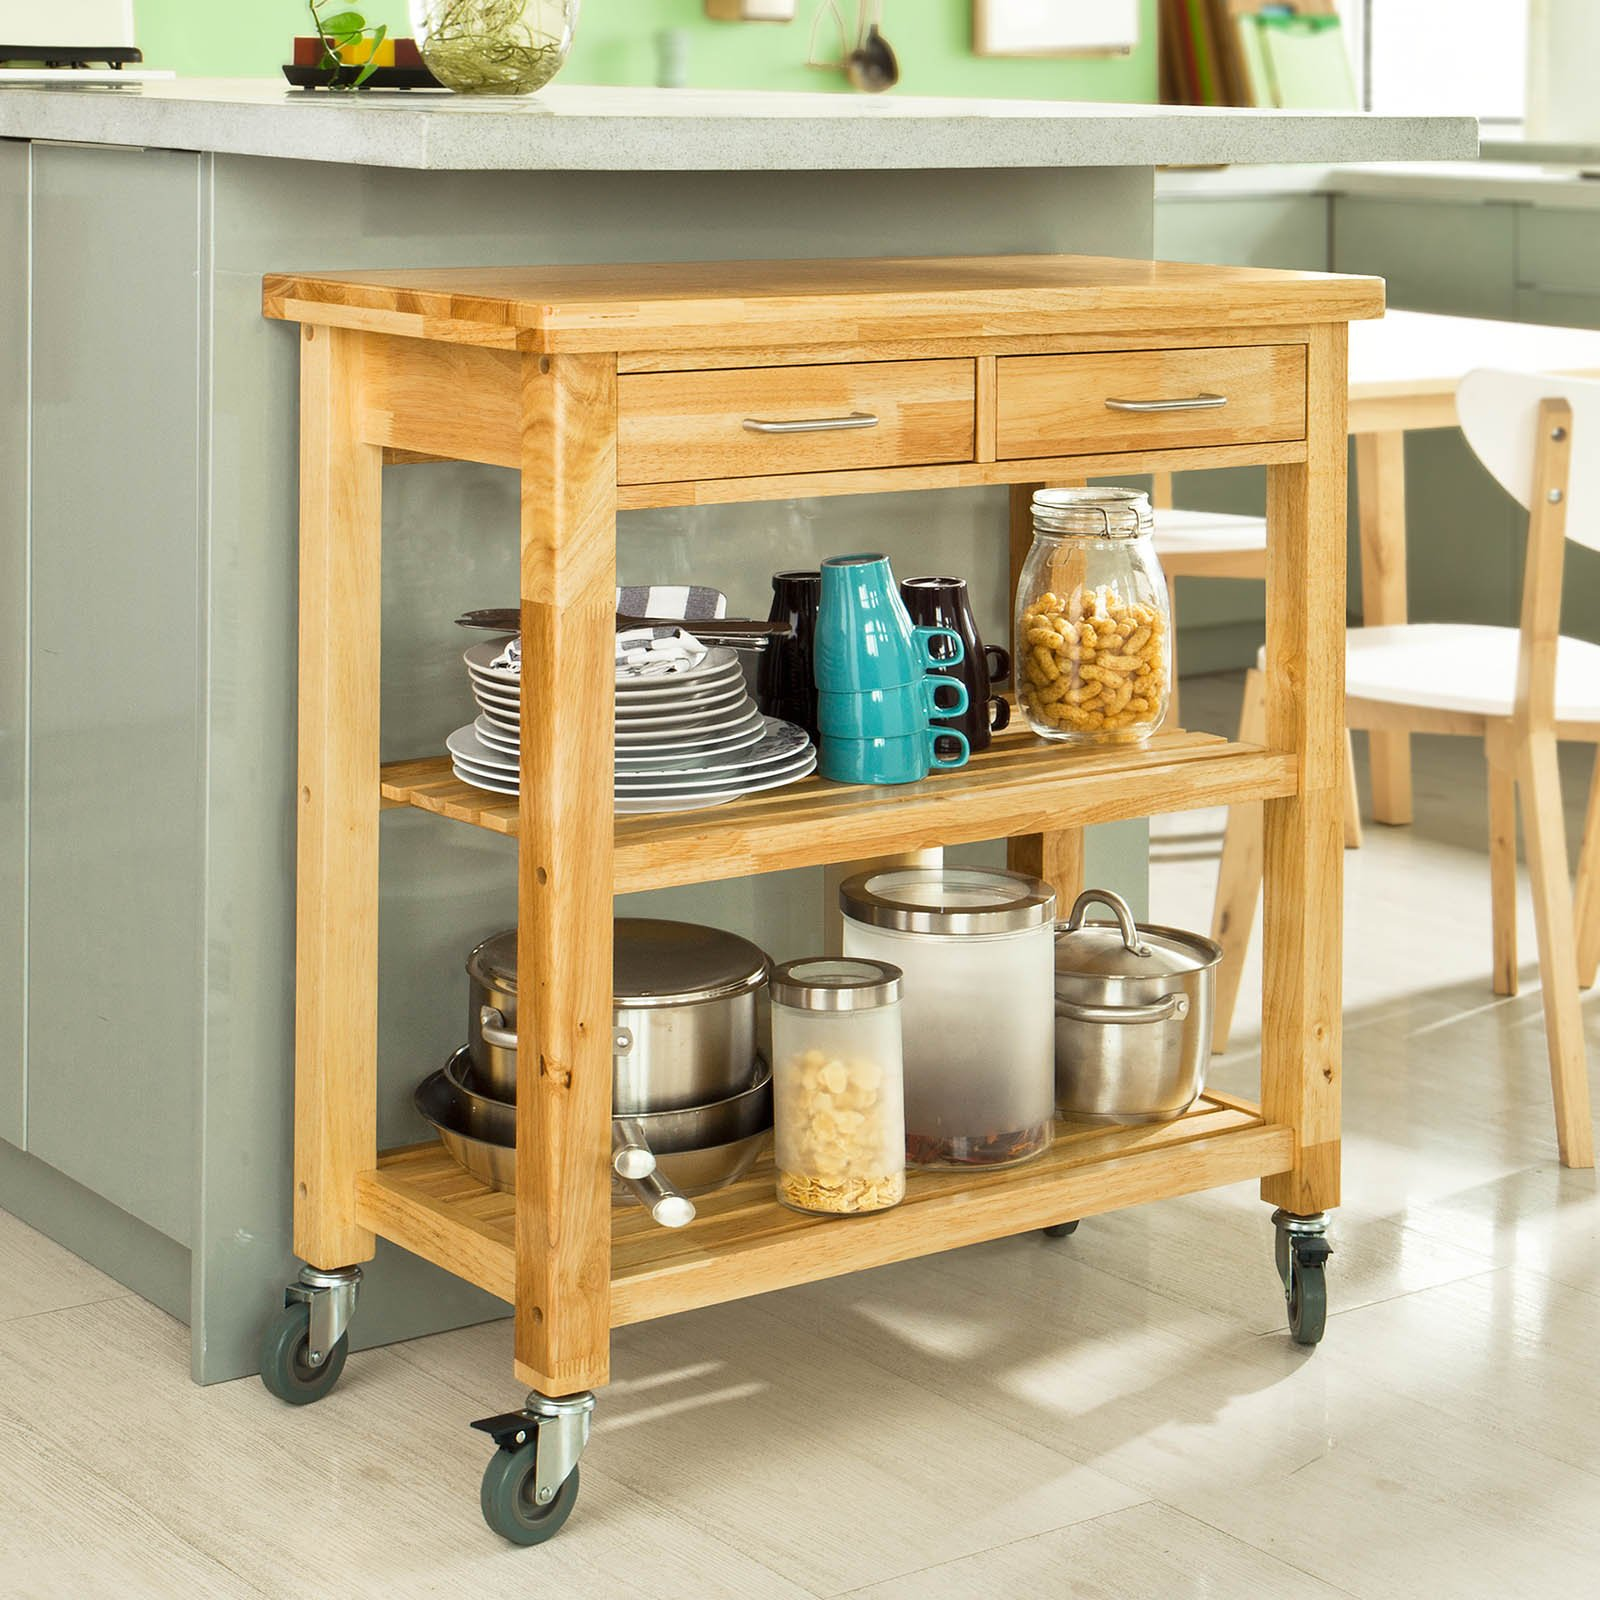 Haotian FKW24-N (natual), Rubber Wood Kitchen Trolley Cart with Two Drawers & Shelves, Kitchen Storage Trolley, L80cm(31.5in)xW40cm(15.7in)xH90cm(35.4in) by Haotian (Image #8)